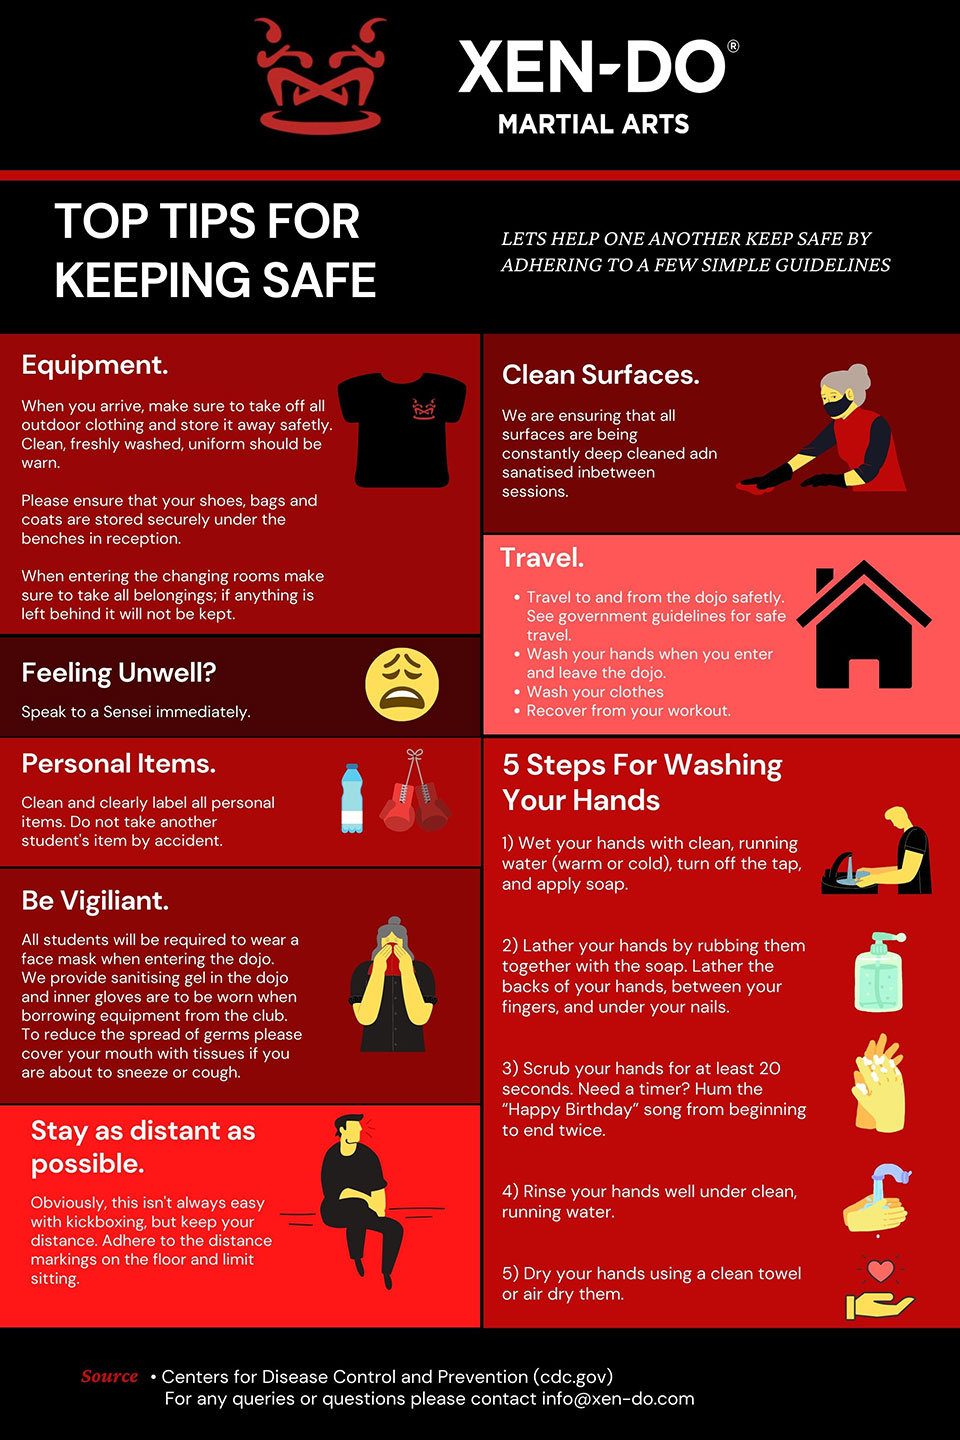 Xen-Do Top tips for safety poster